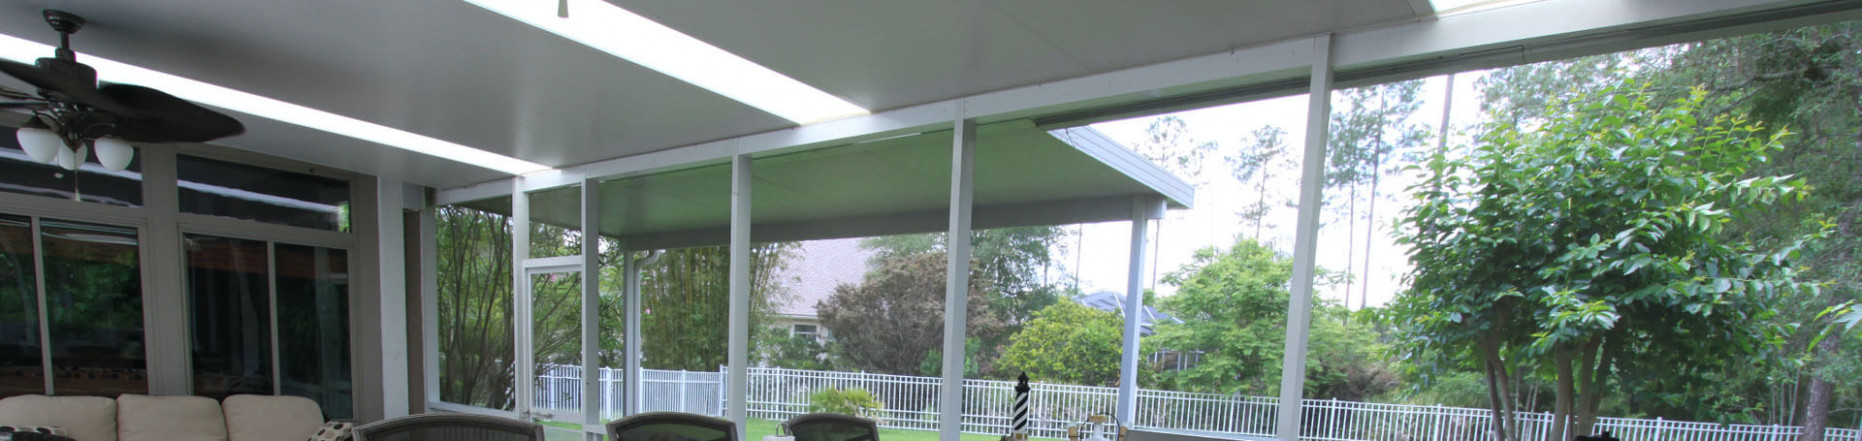 Carports And Awnings Newcastle Central Coast Metal Carport Near Me ...